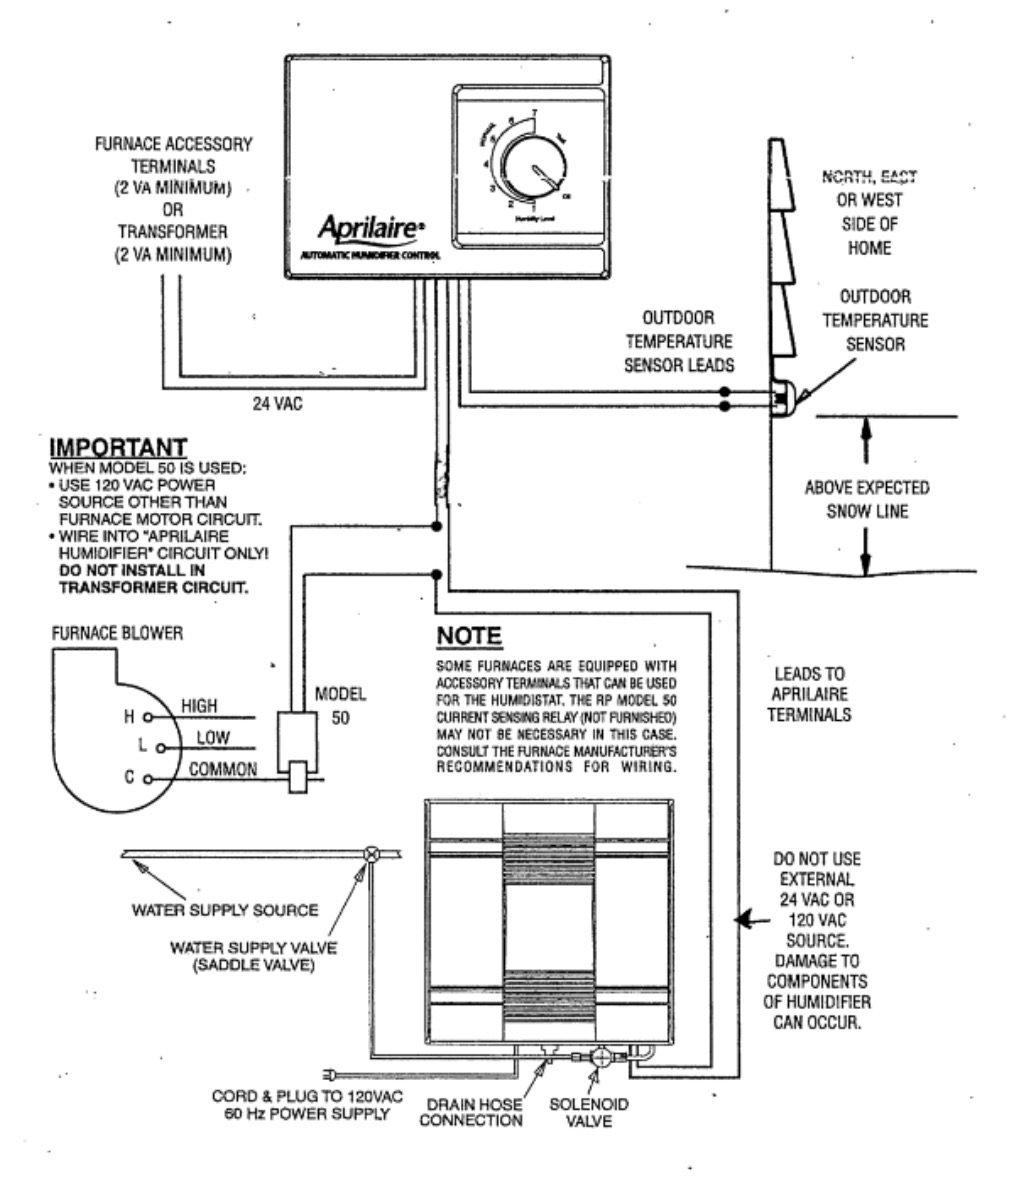 aprilaire 600 humidifier wiring diagram Download-Aprilaire Wiring Diagram 13-q